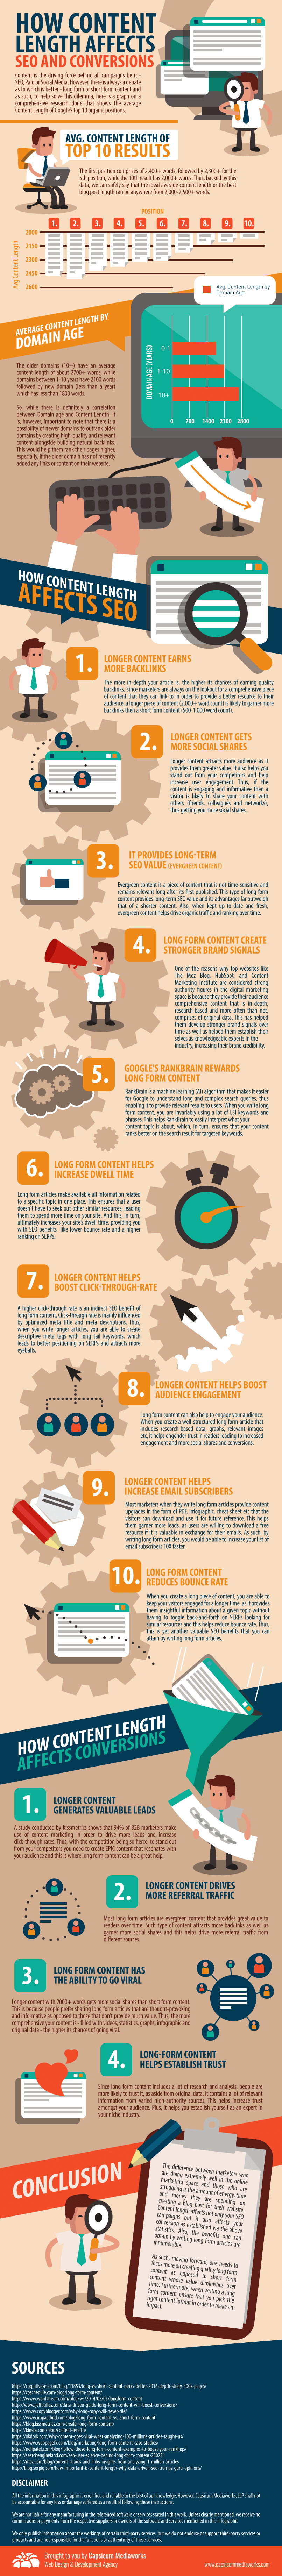 Better Online Content Marketing